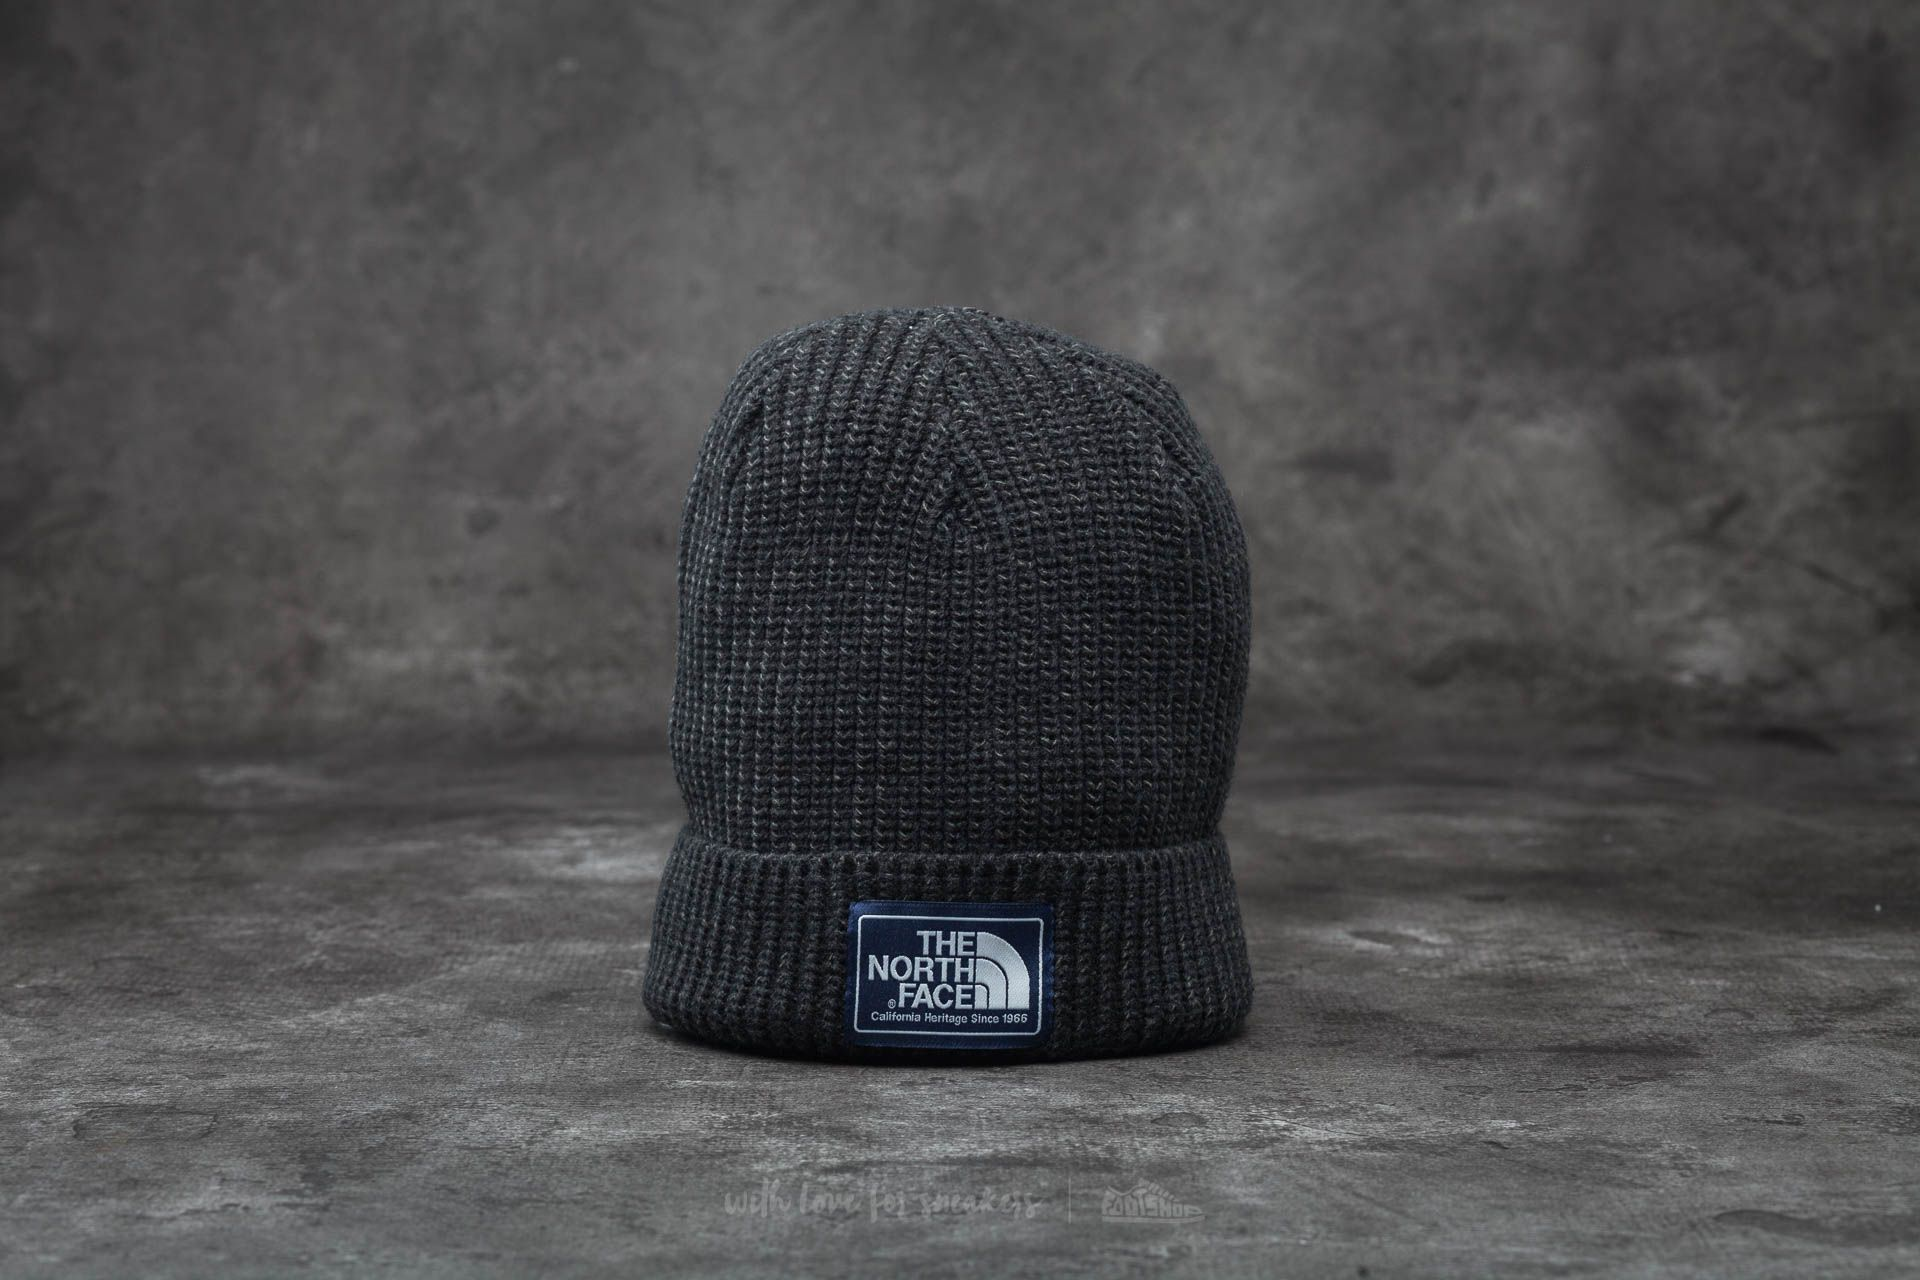 The North Face Pepper Dog Beanie Tnf Black  29126ddb1b1